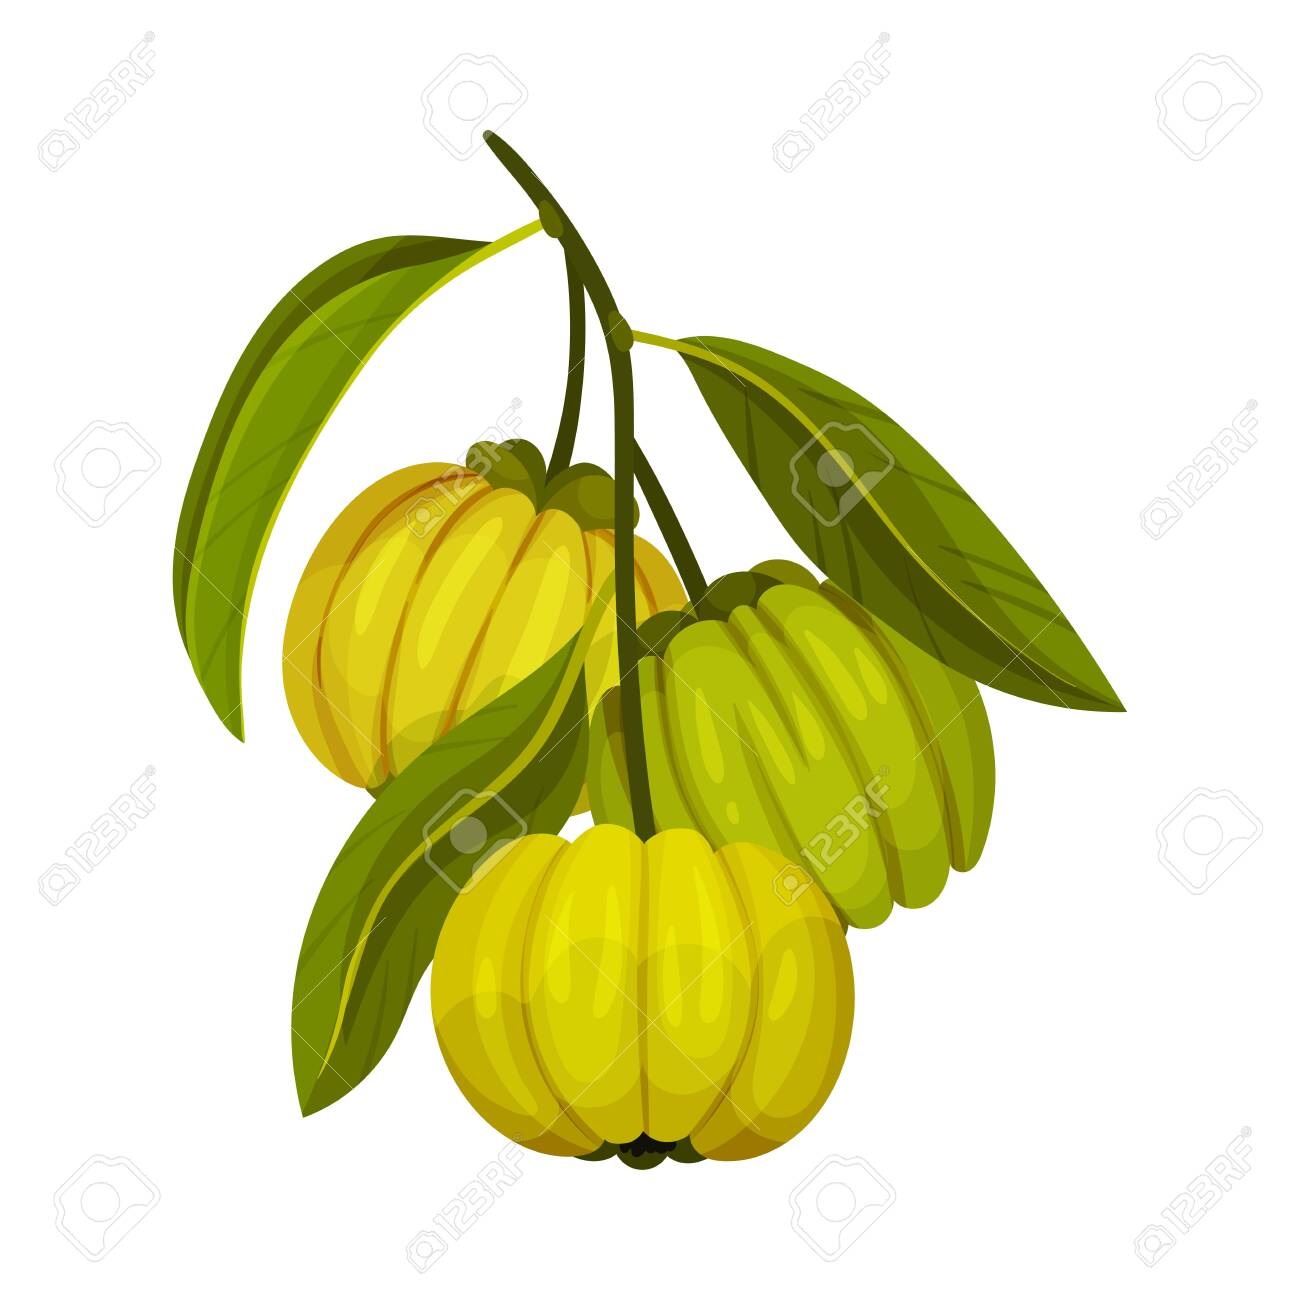 Garcinia Cambogia Fruit With Oblong Green Leaves Vector